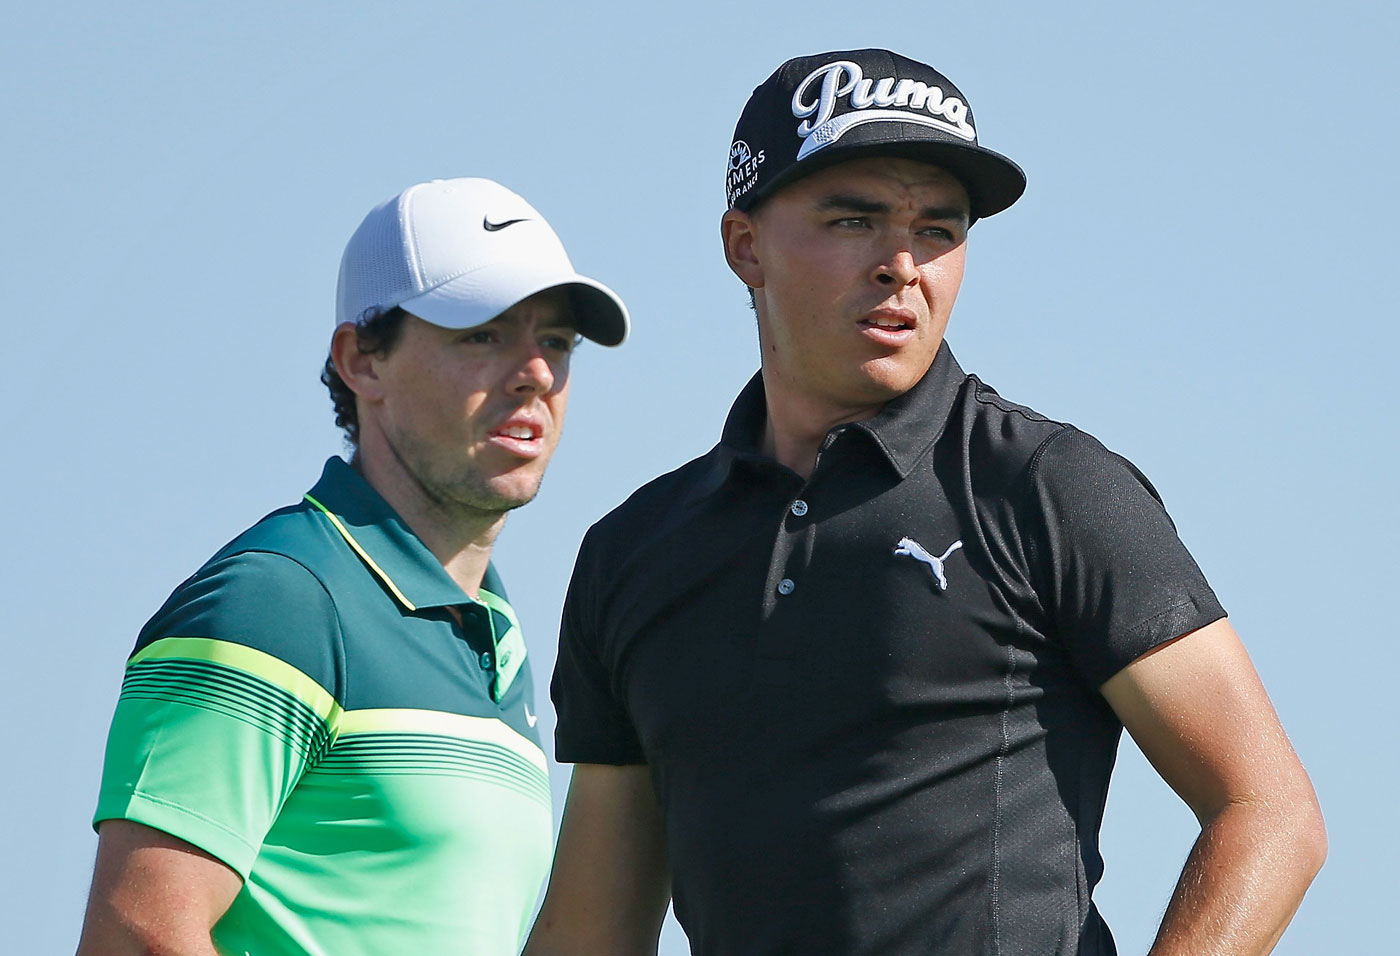 Rory McIlroy and Rickie Fowler both shot 67 Thursday in Abu Dhabi.